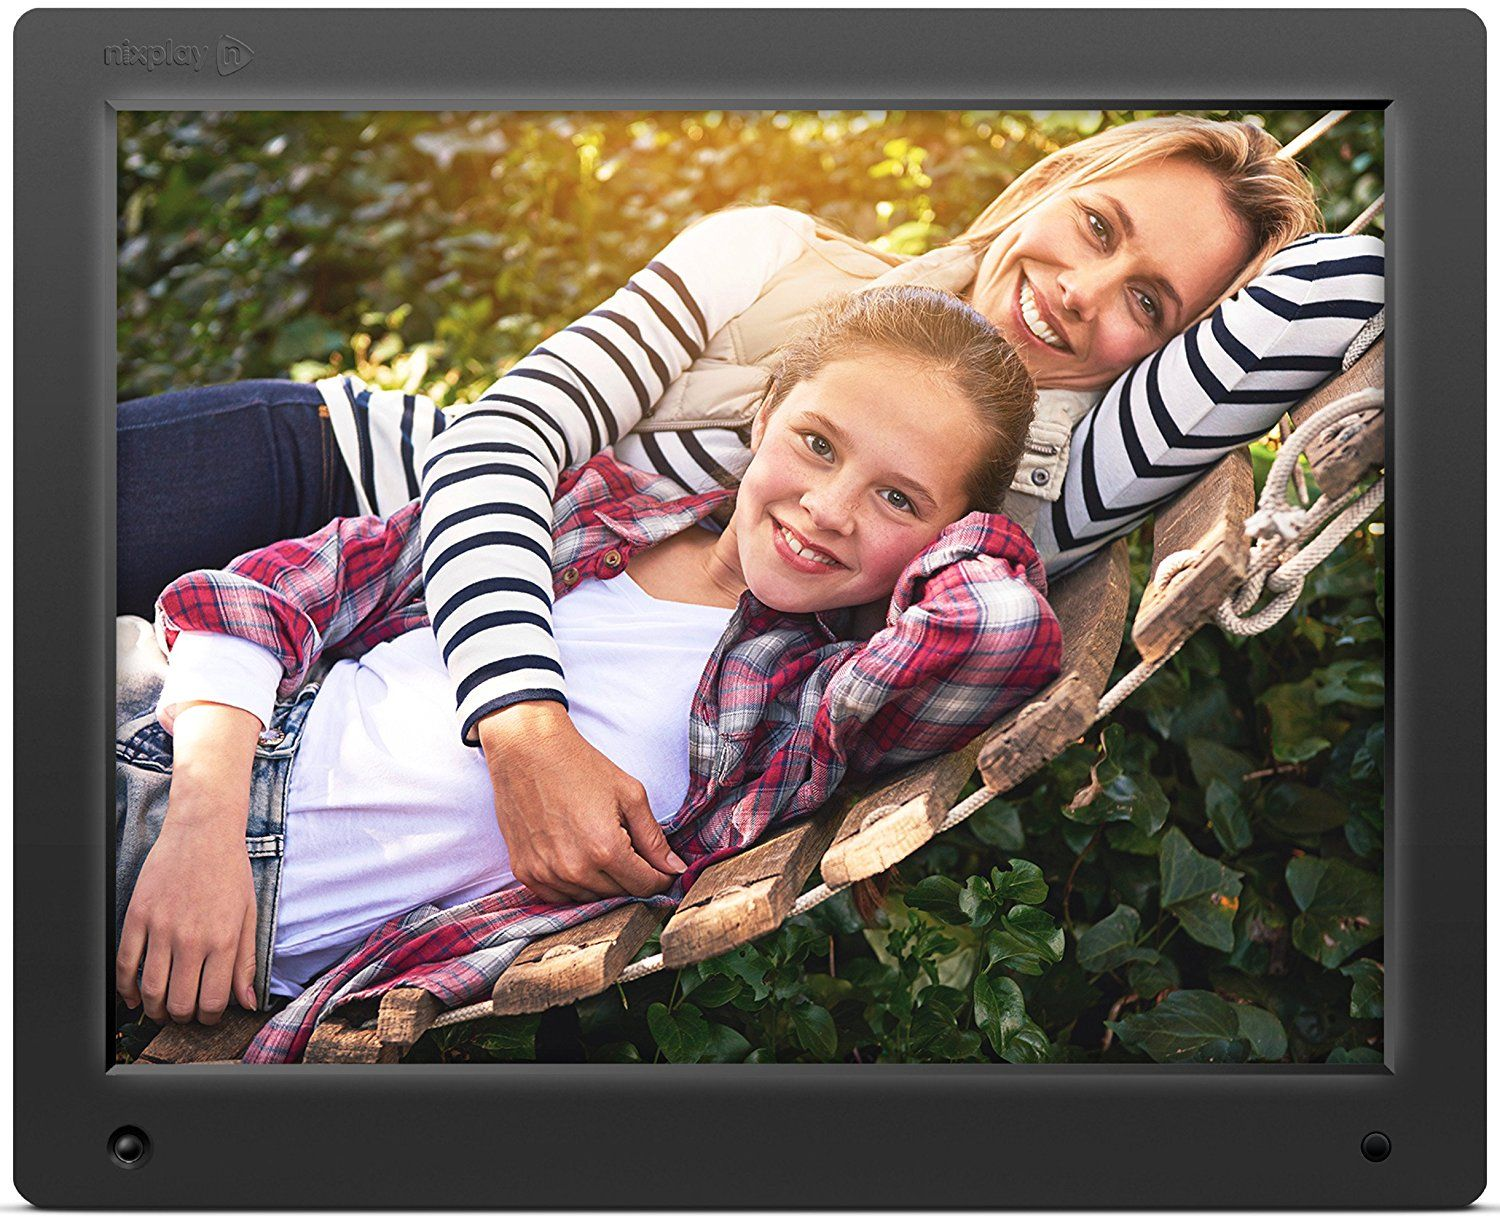 Top 10 Best Digital Photo Frames Reviews Best Digital Photo Frame Digital Picture Frame Digital Photo Frame